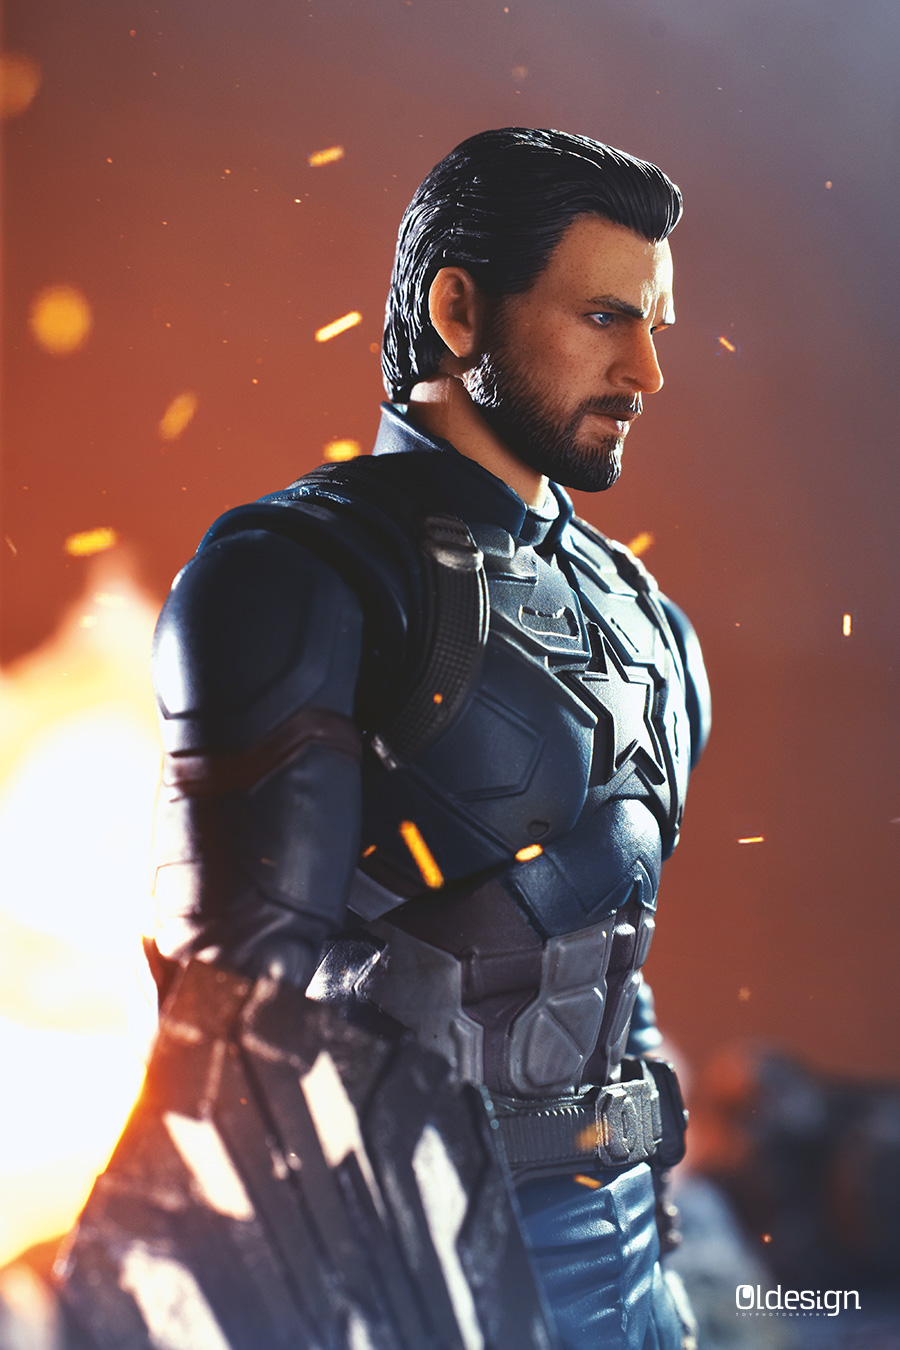 5_captainamerica_oldesign